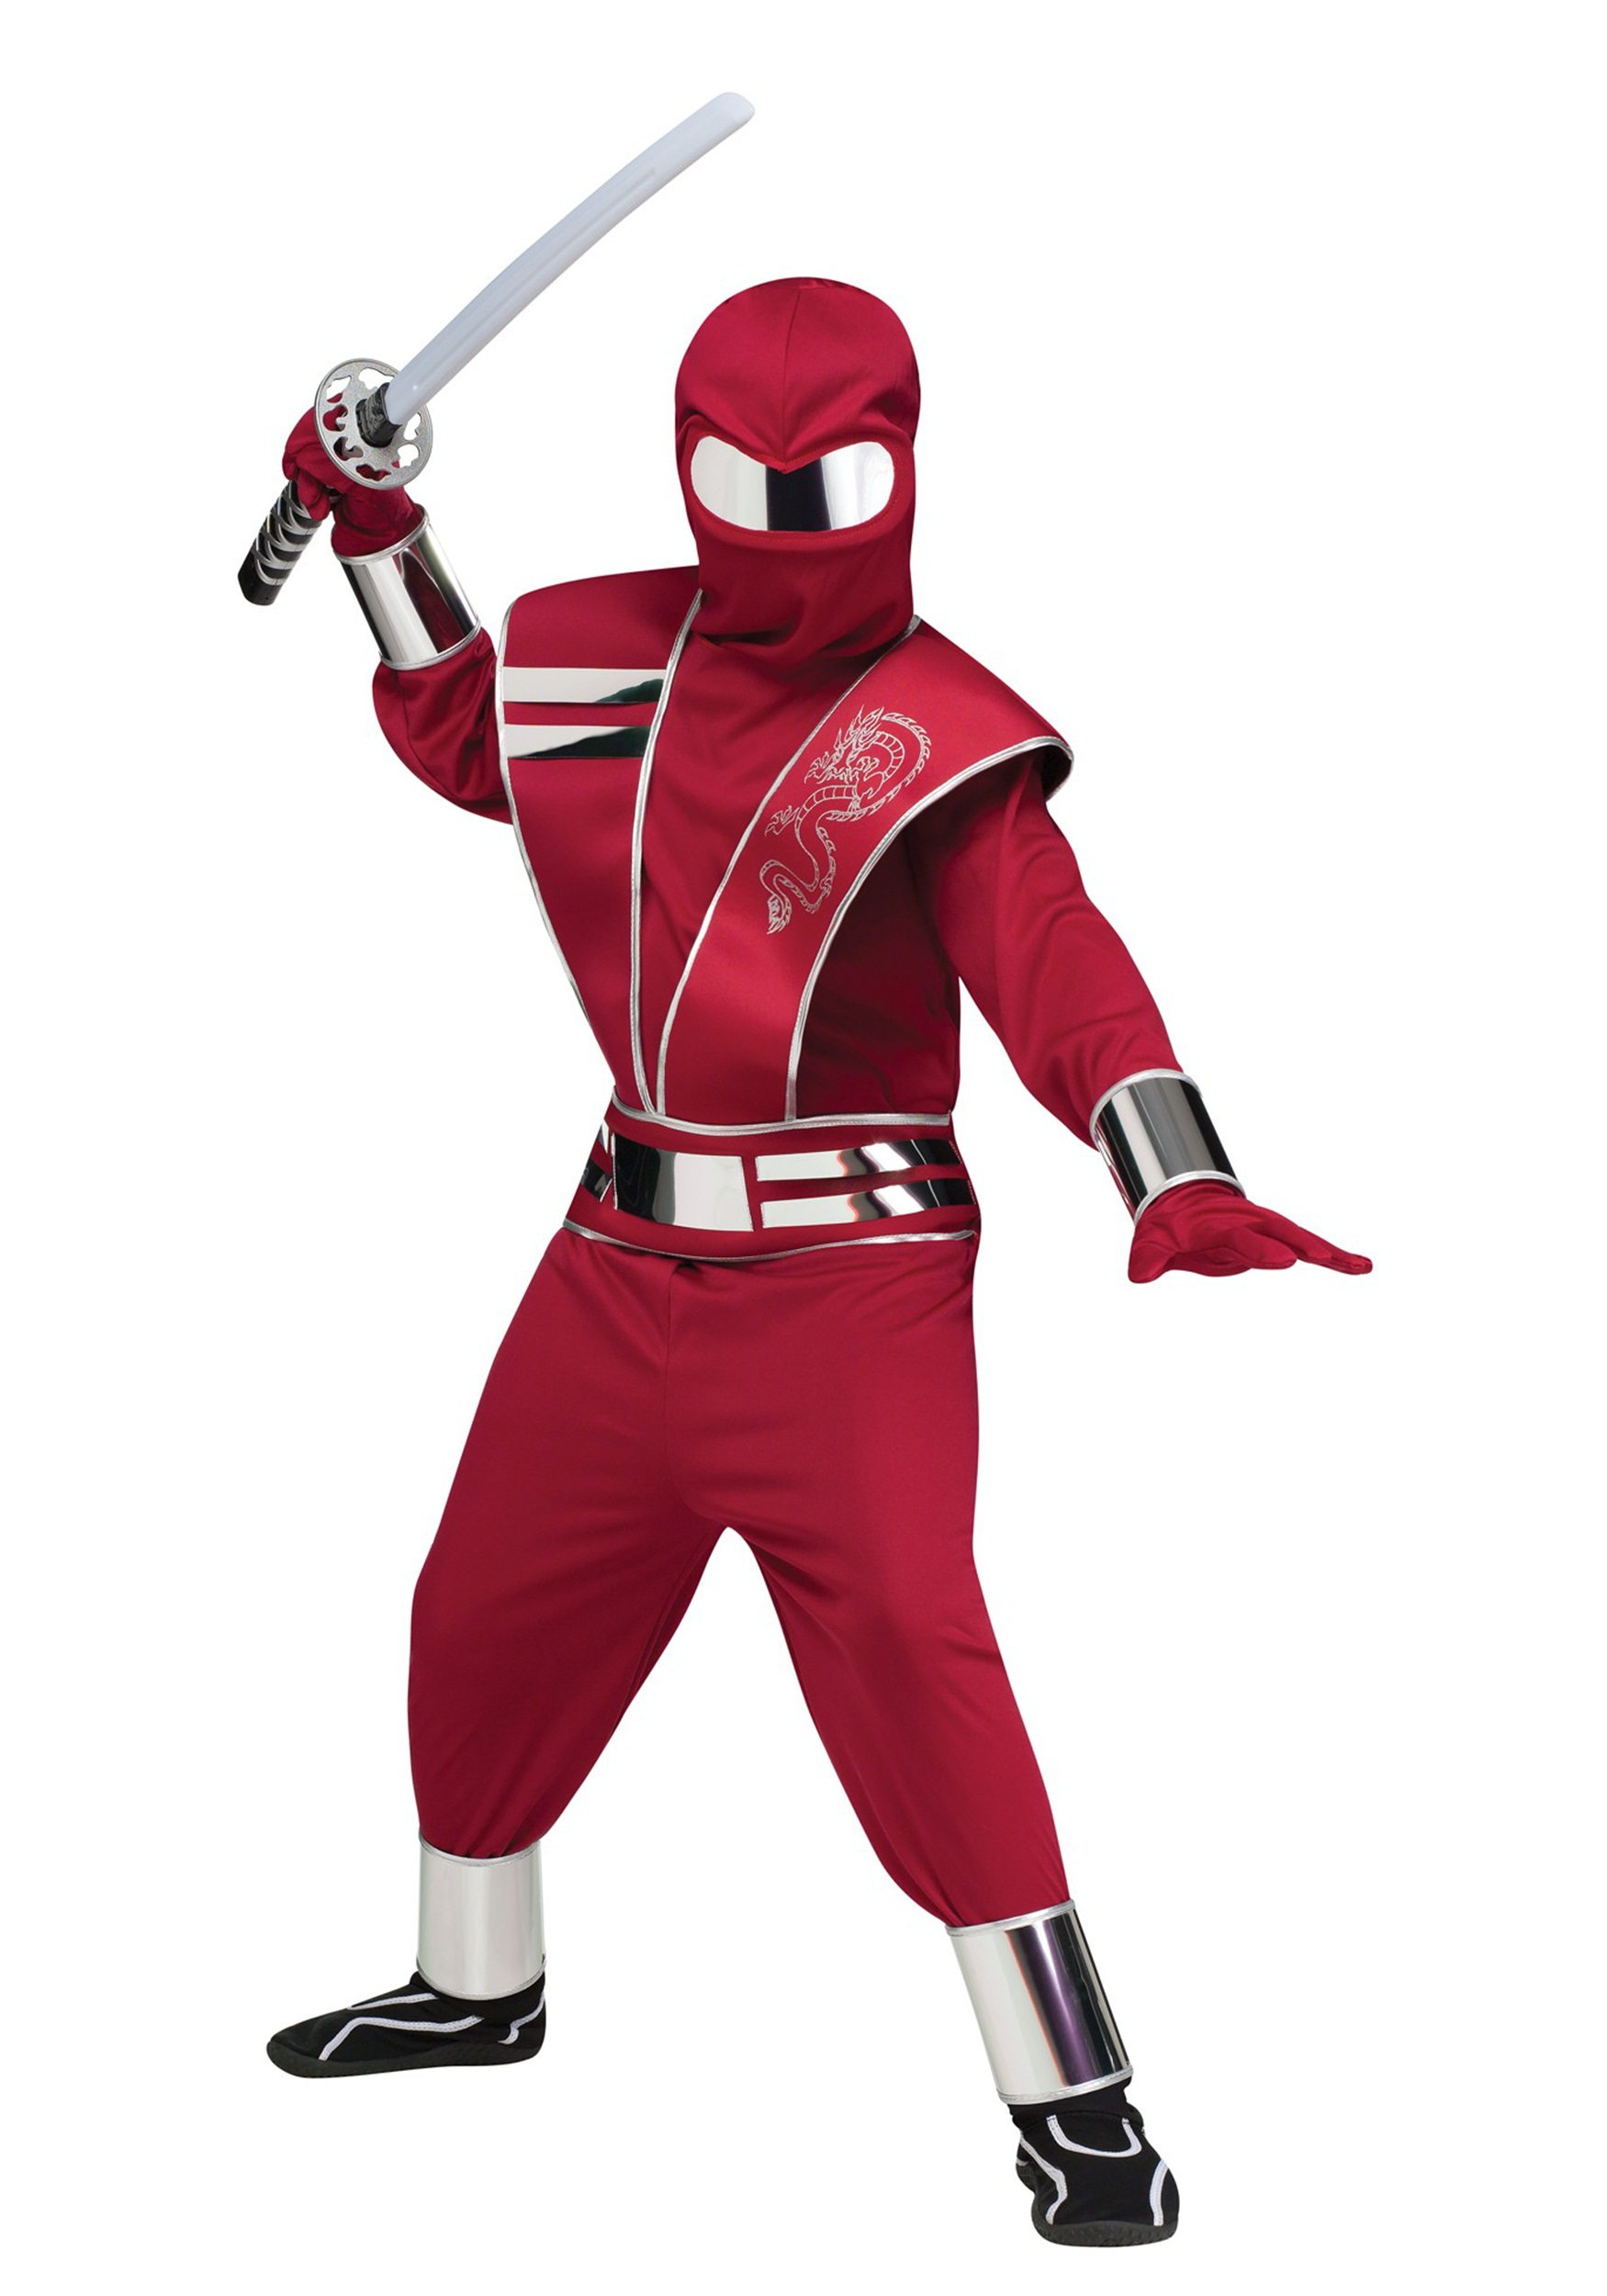 Child Red Mirror Ninja Costume  sc 1 st  Halloween Costumes & Child Red Mirror Ninja Costume - Halloween Costumes